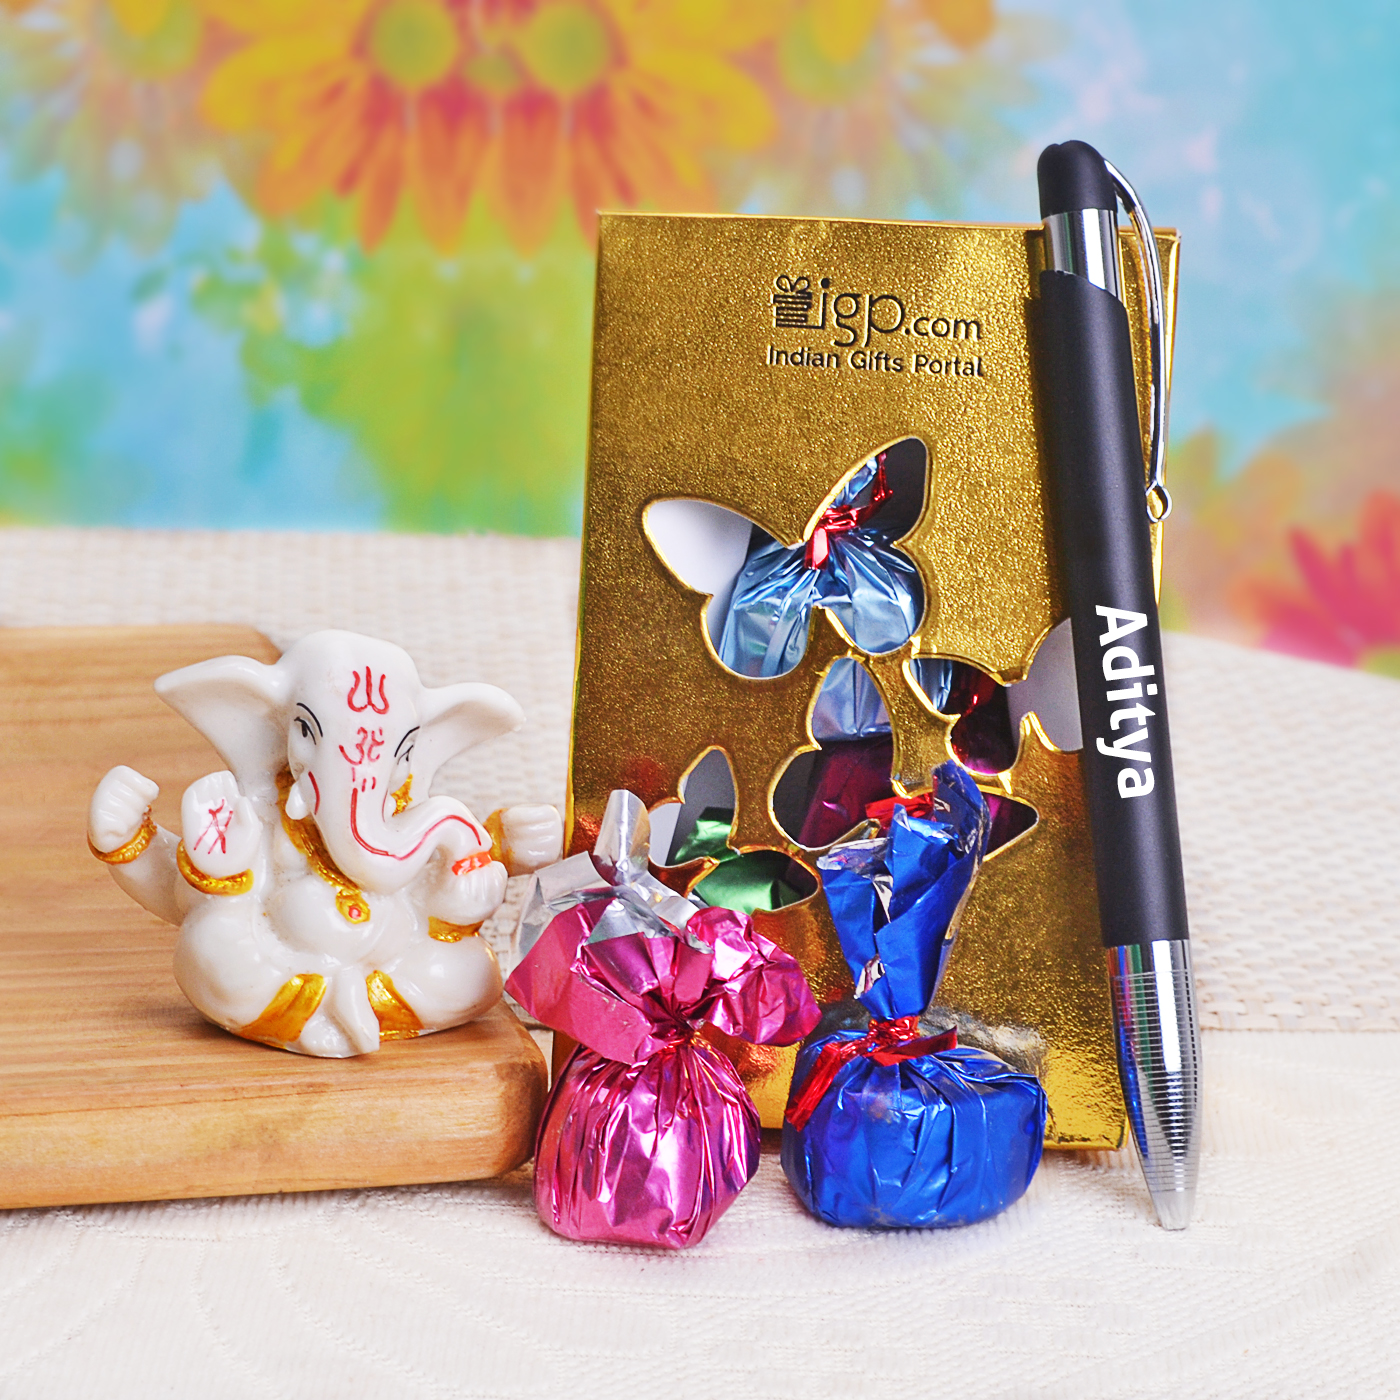 7 Delicious Diwali Gifts & Quirky Diwali Gift Hampers that Your Friends & Family Would Love to Receive